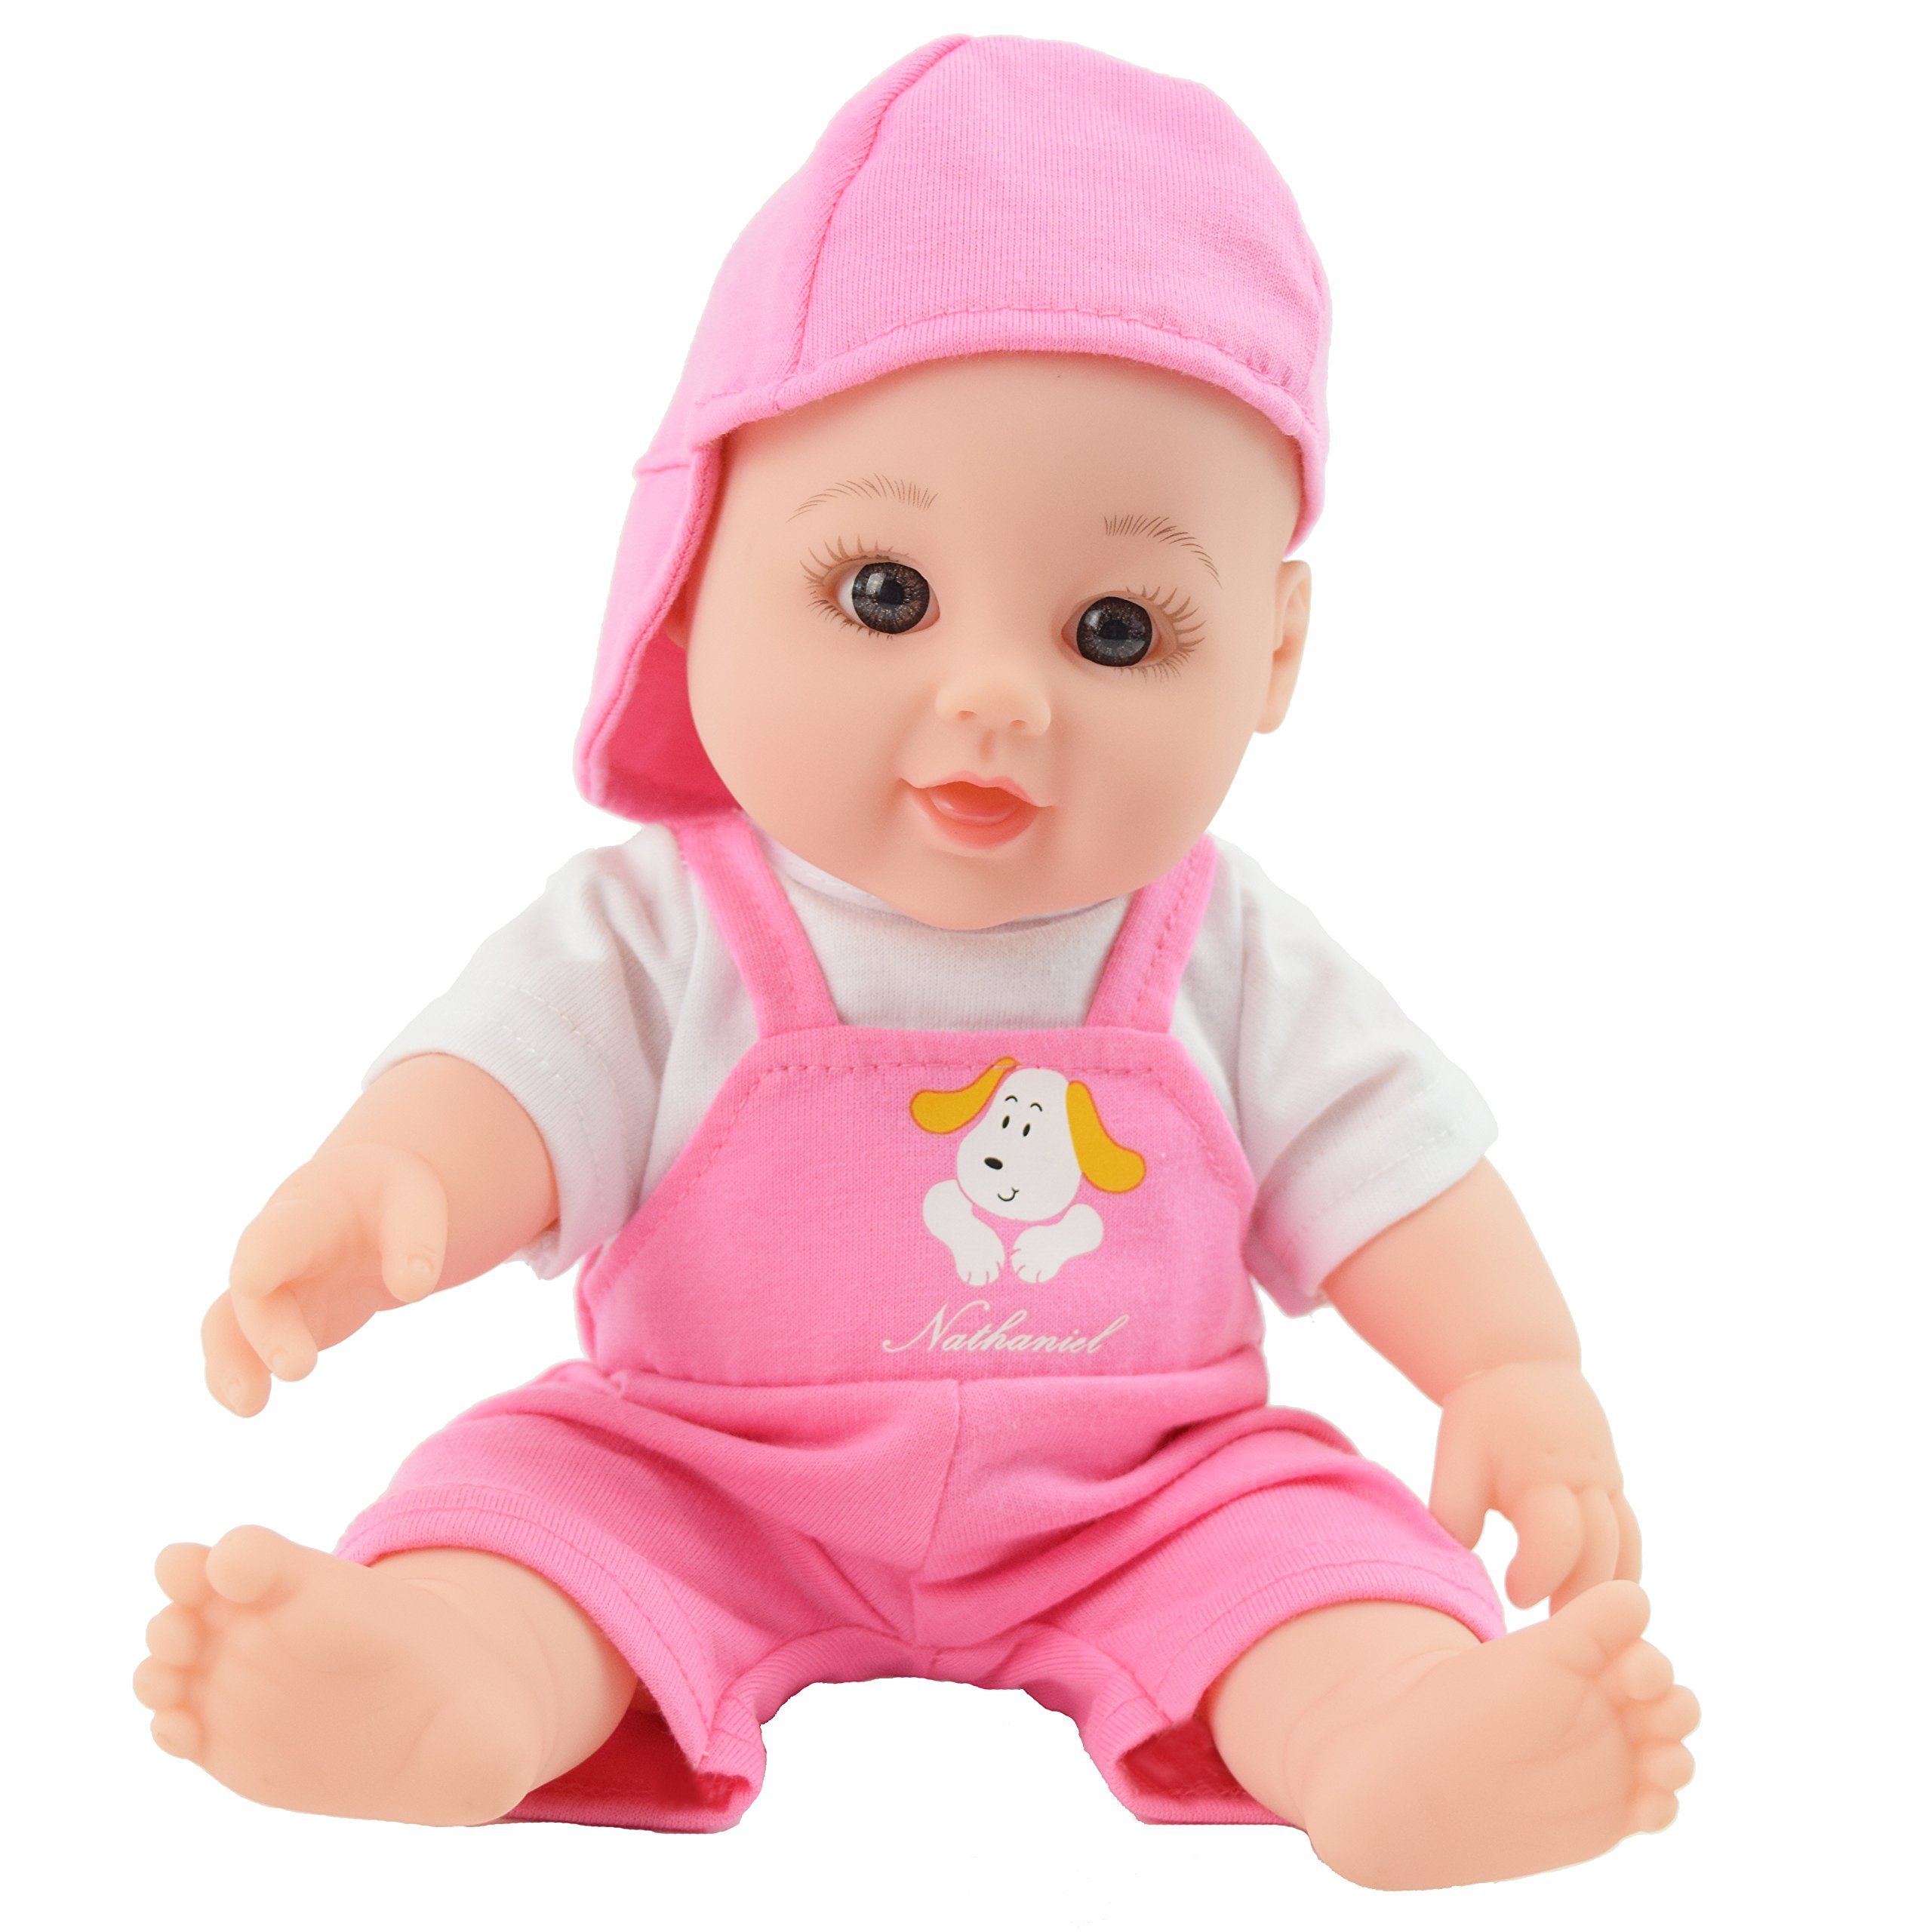 Cheap Baby Boy Dolls For Sale Find Baby Boy Dolls For Sale Deals On Line At Alibaba Com